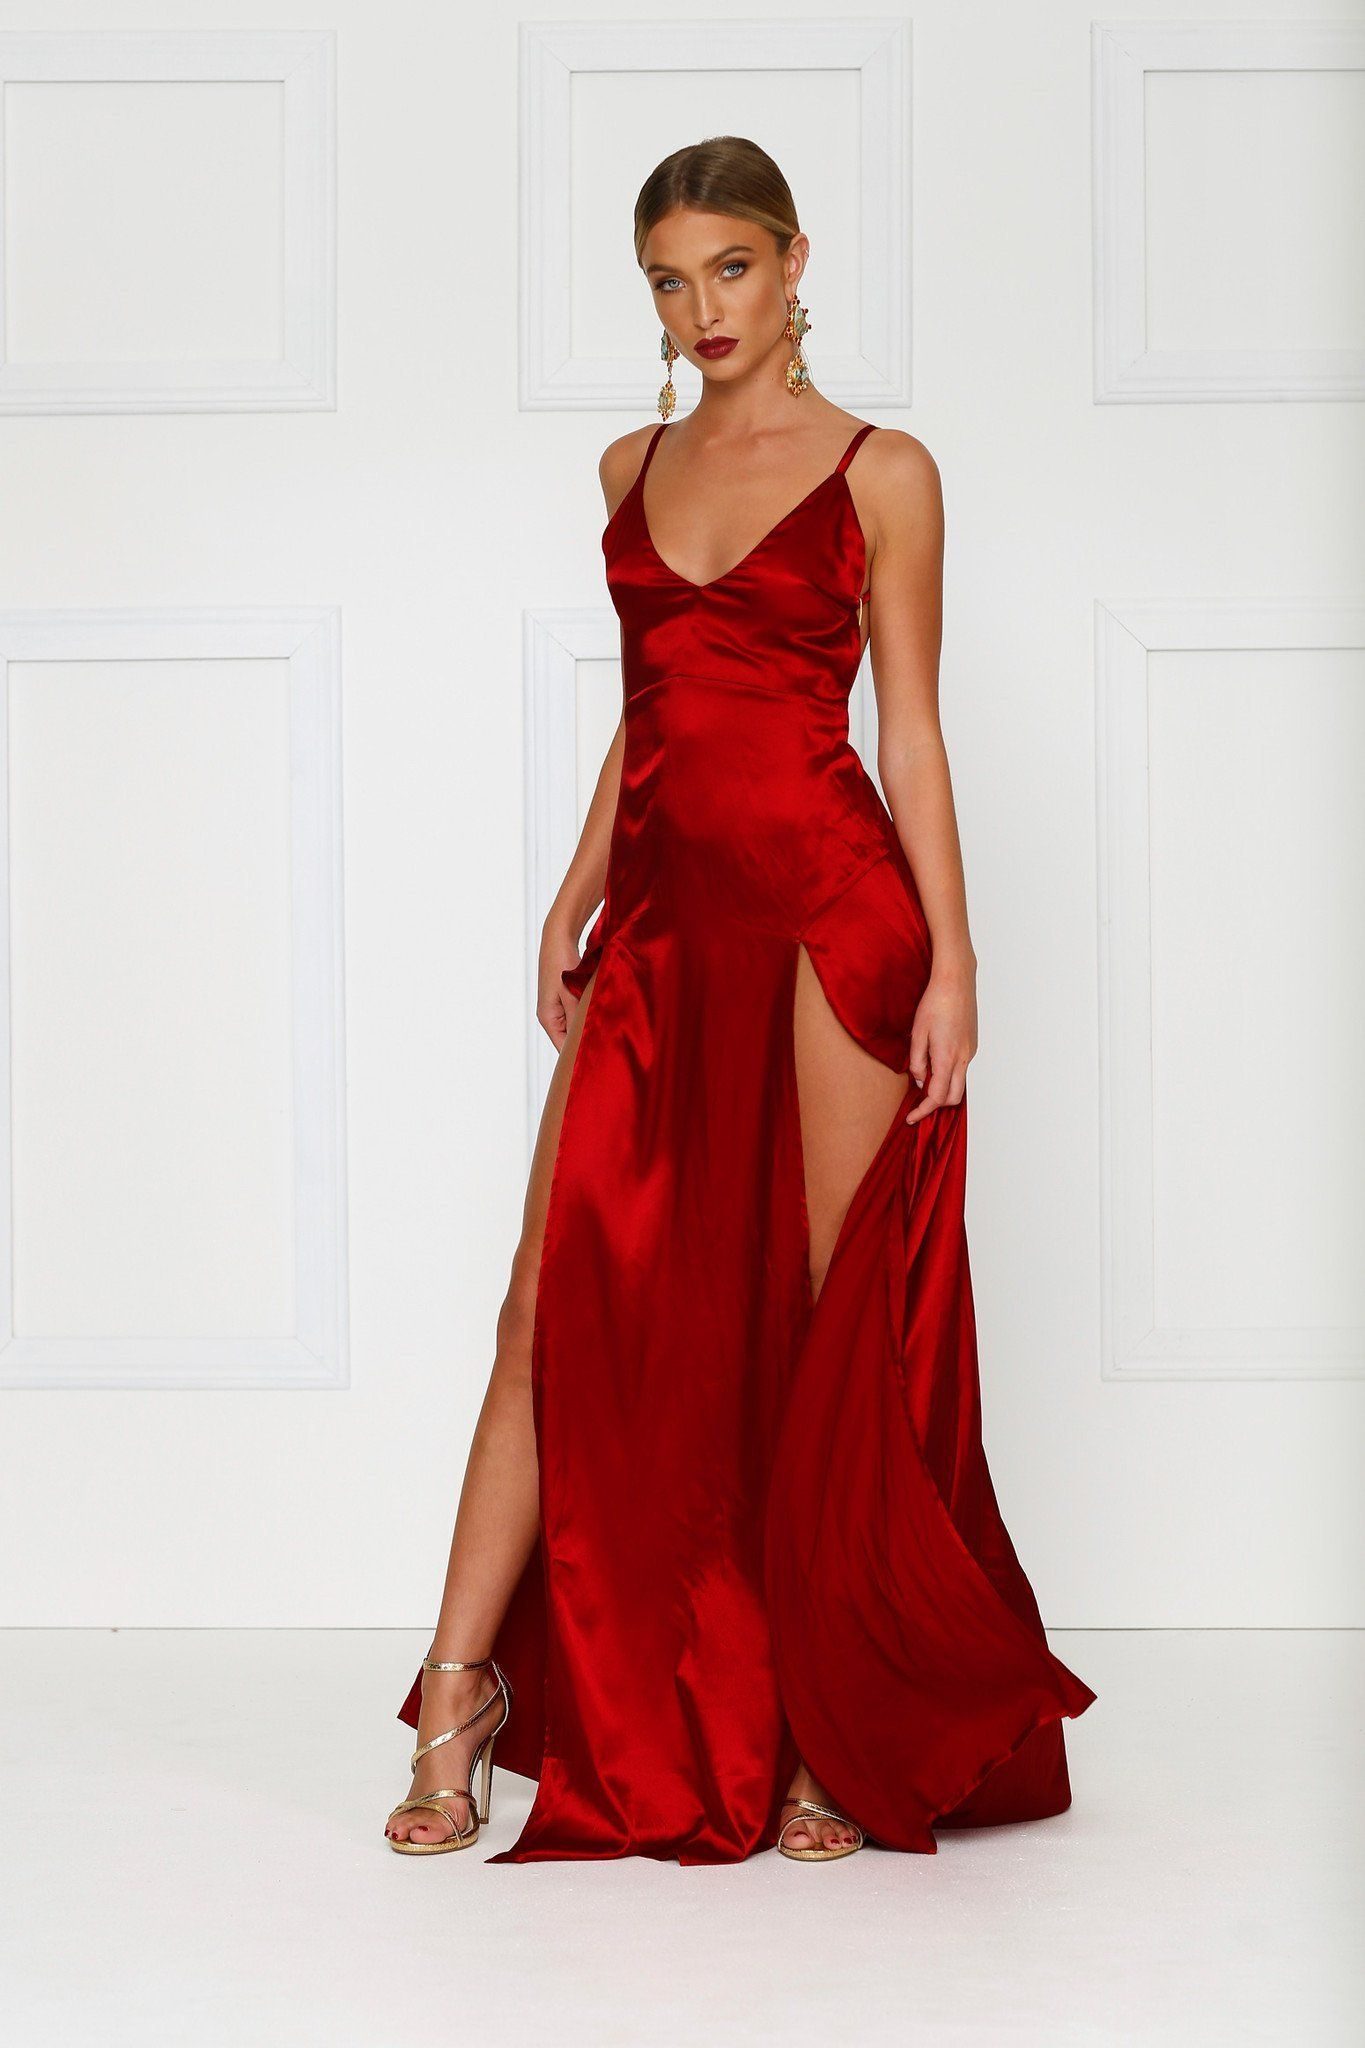 Pin by Cléopatra, Ruler Of All on Fancy | Red silk prom ...